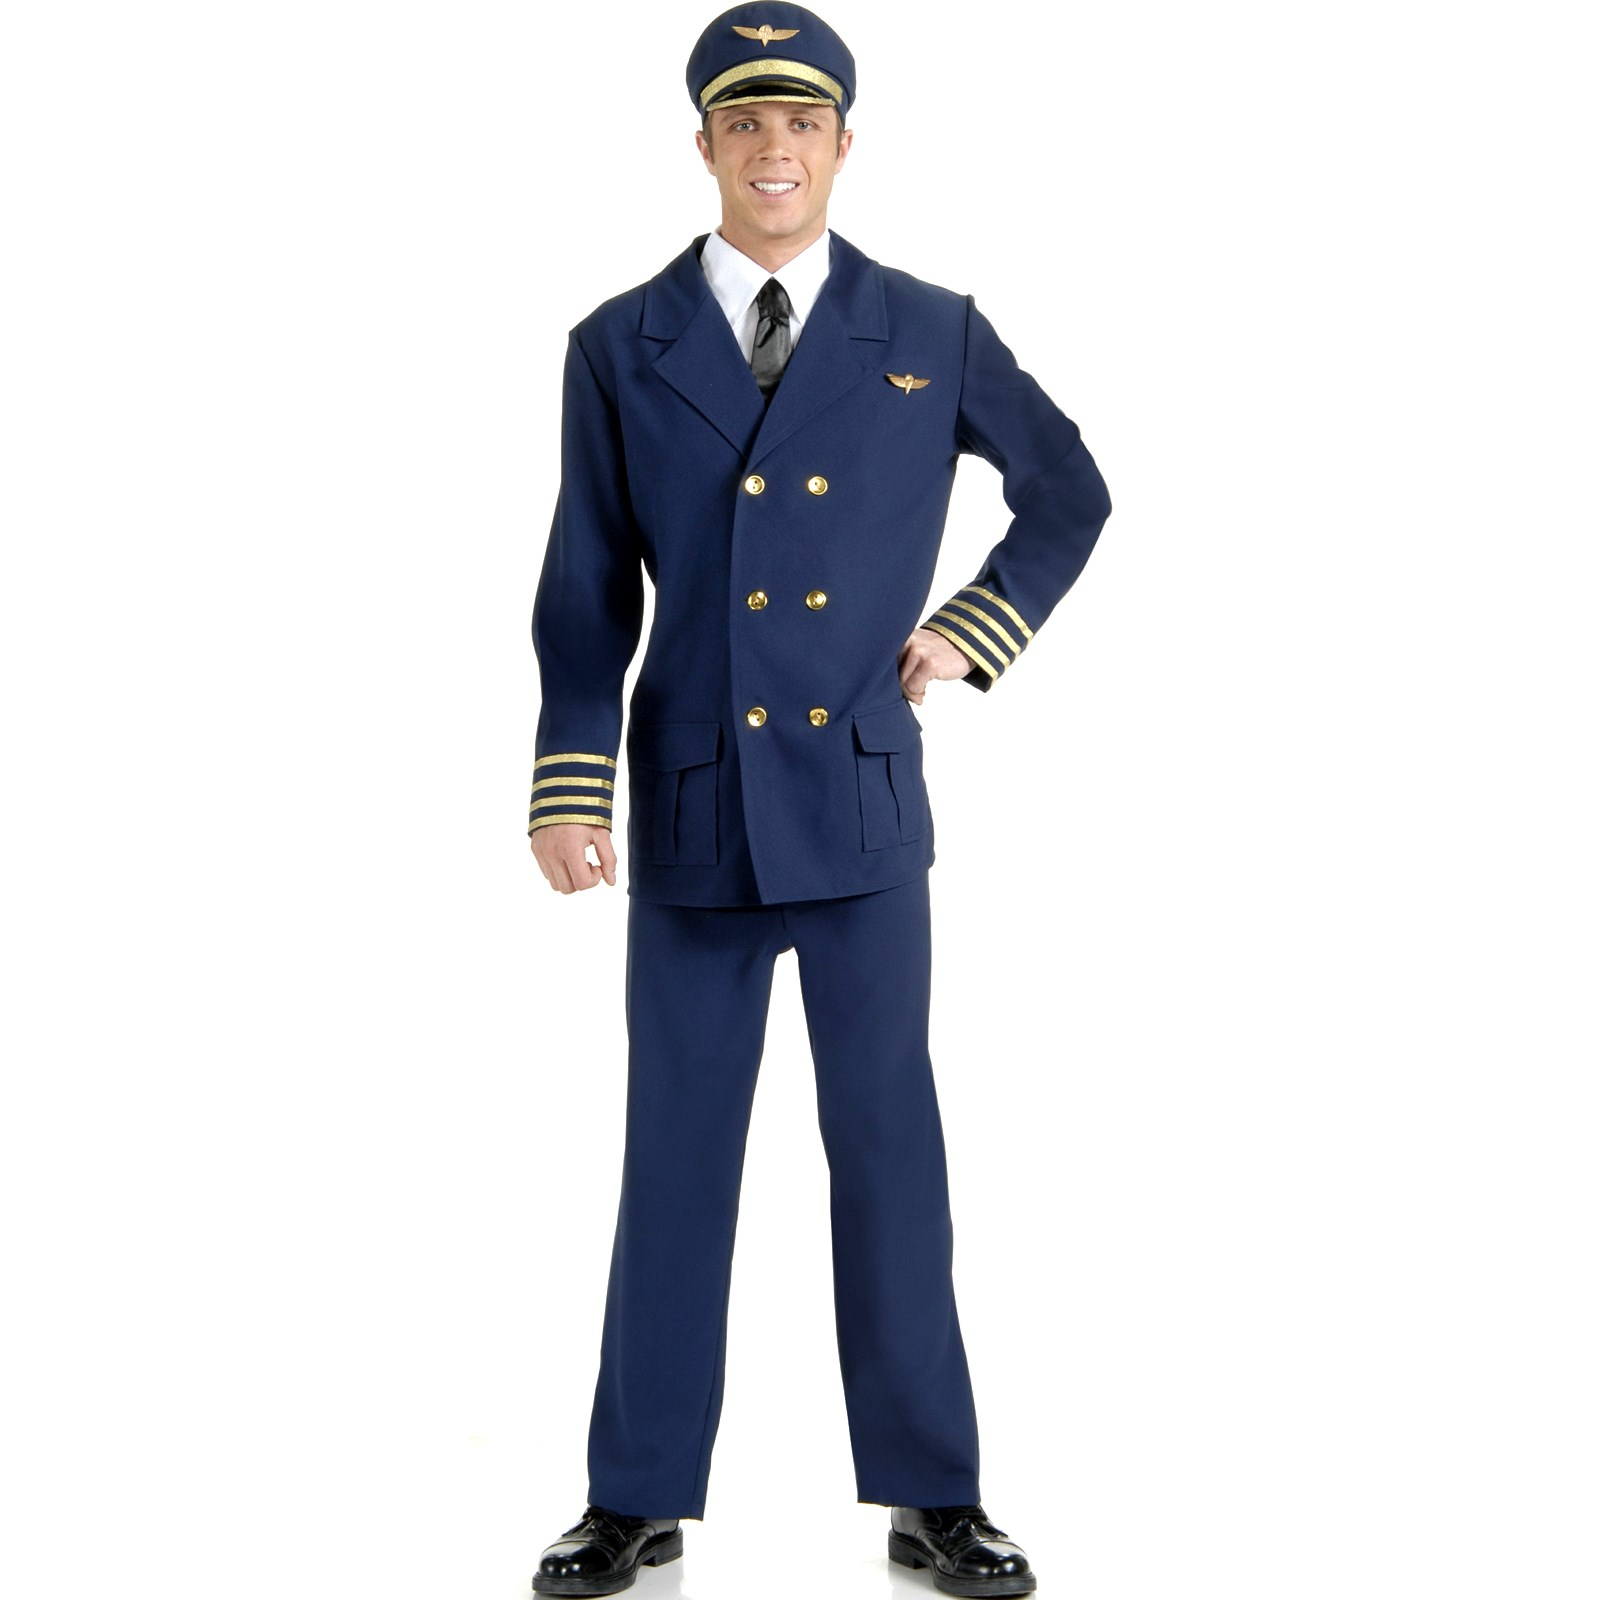 Image of Airline Pilot Adult Costume